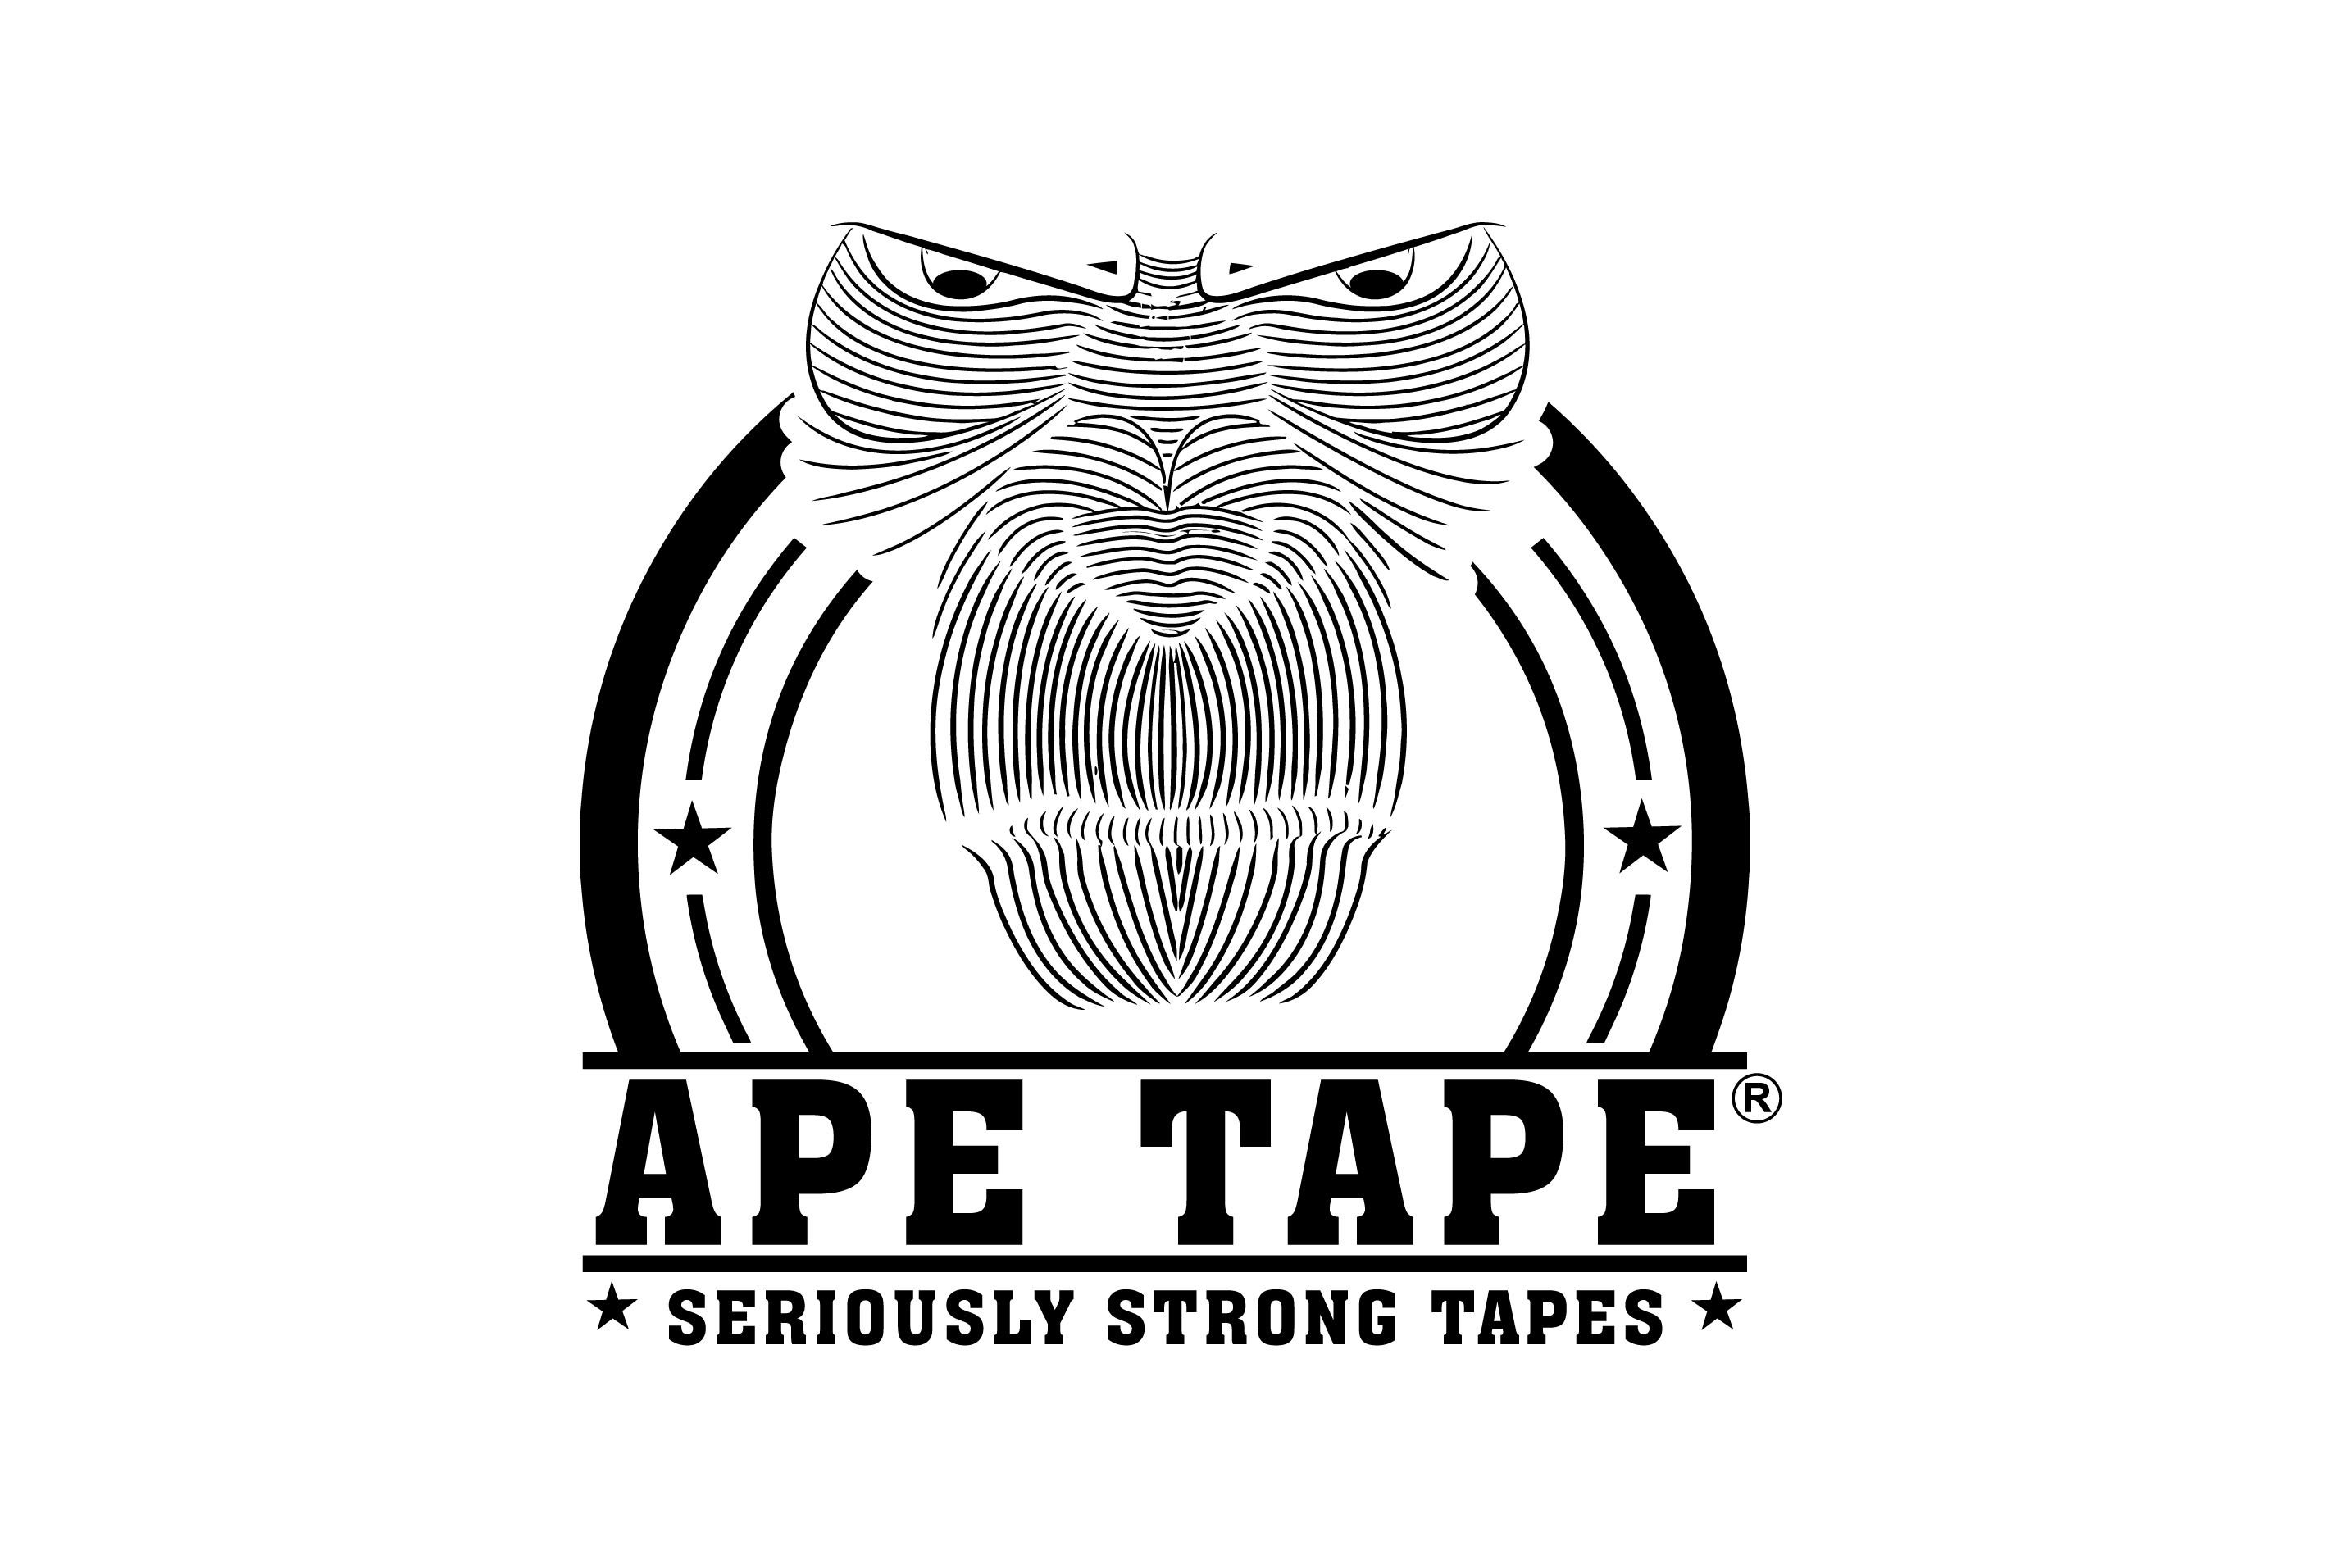 APE TAPE - Seriously Strong Self Adhesive Tapes